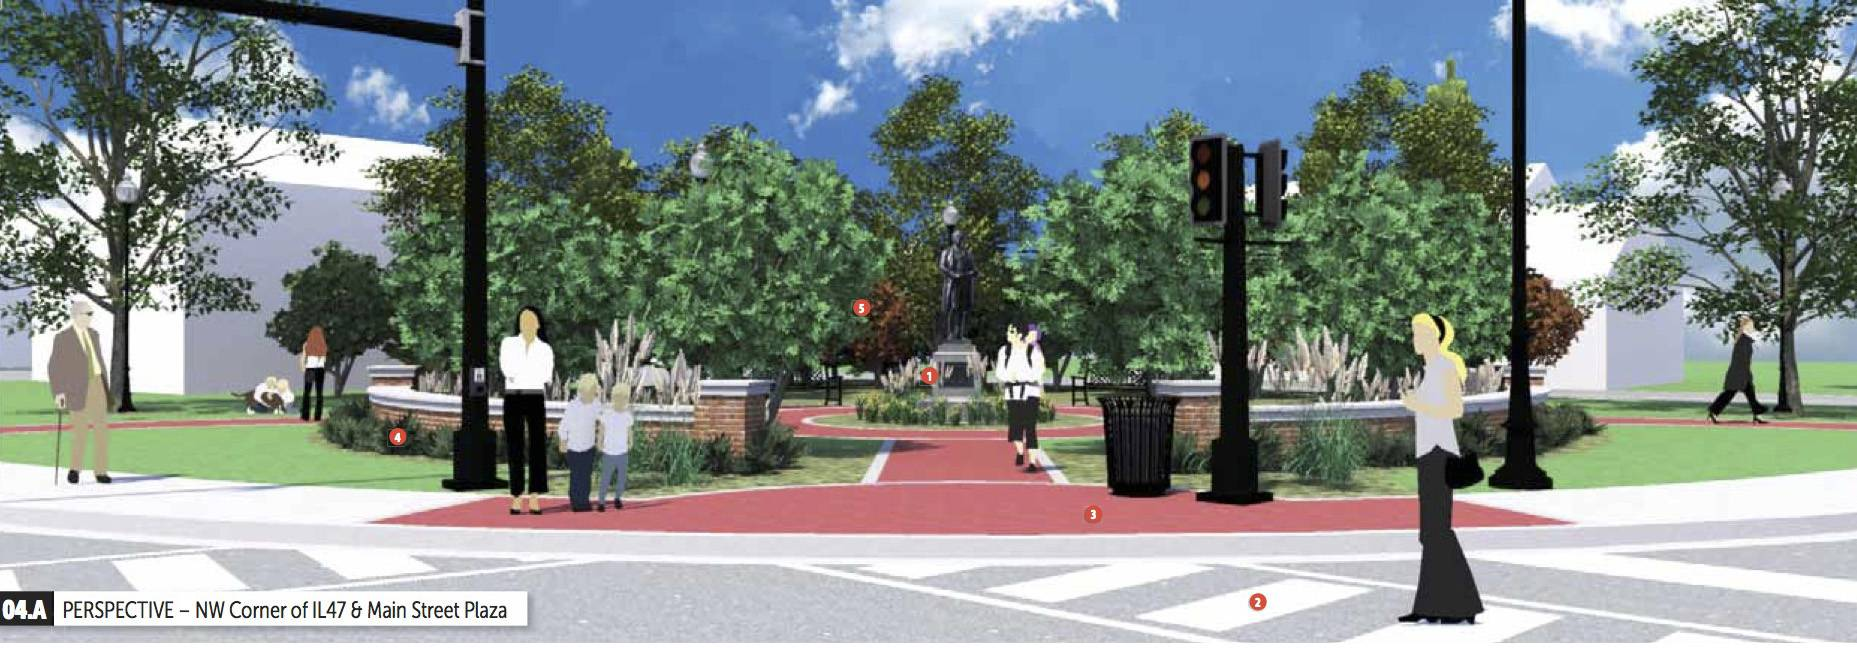 Huntley's downtown revitalization plans call for widening sidewalks along Main Street, adding carriage walks with raised planters, benches, bike racks, trash receptacles and trees along the parkway, as well as making downtown more pedestrian friendly.